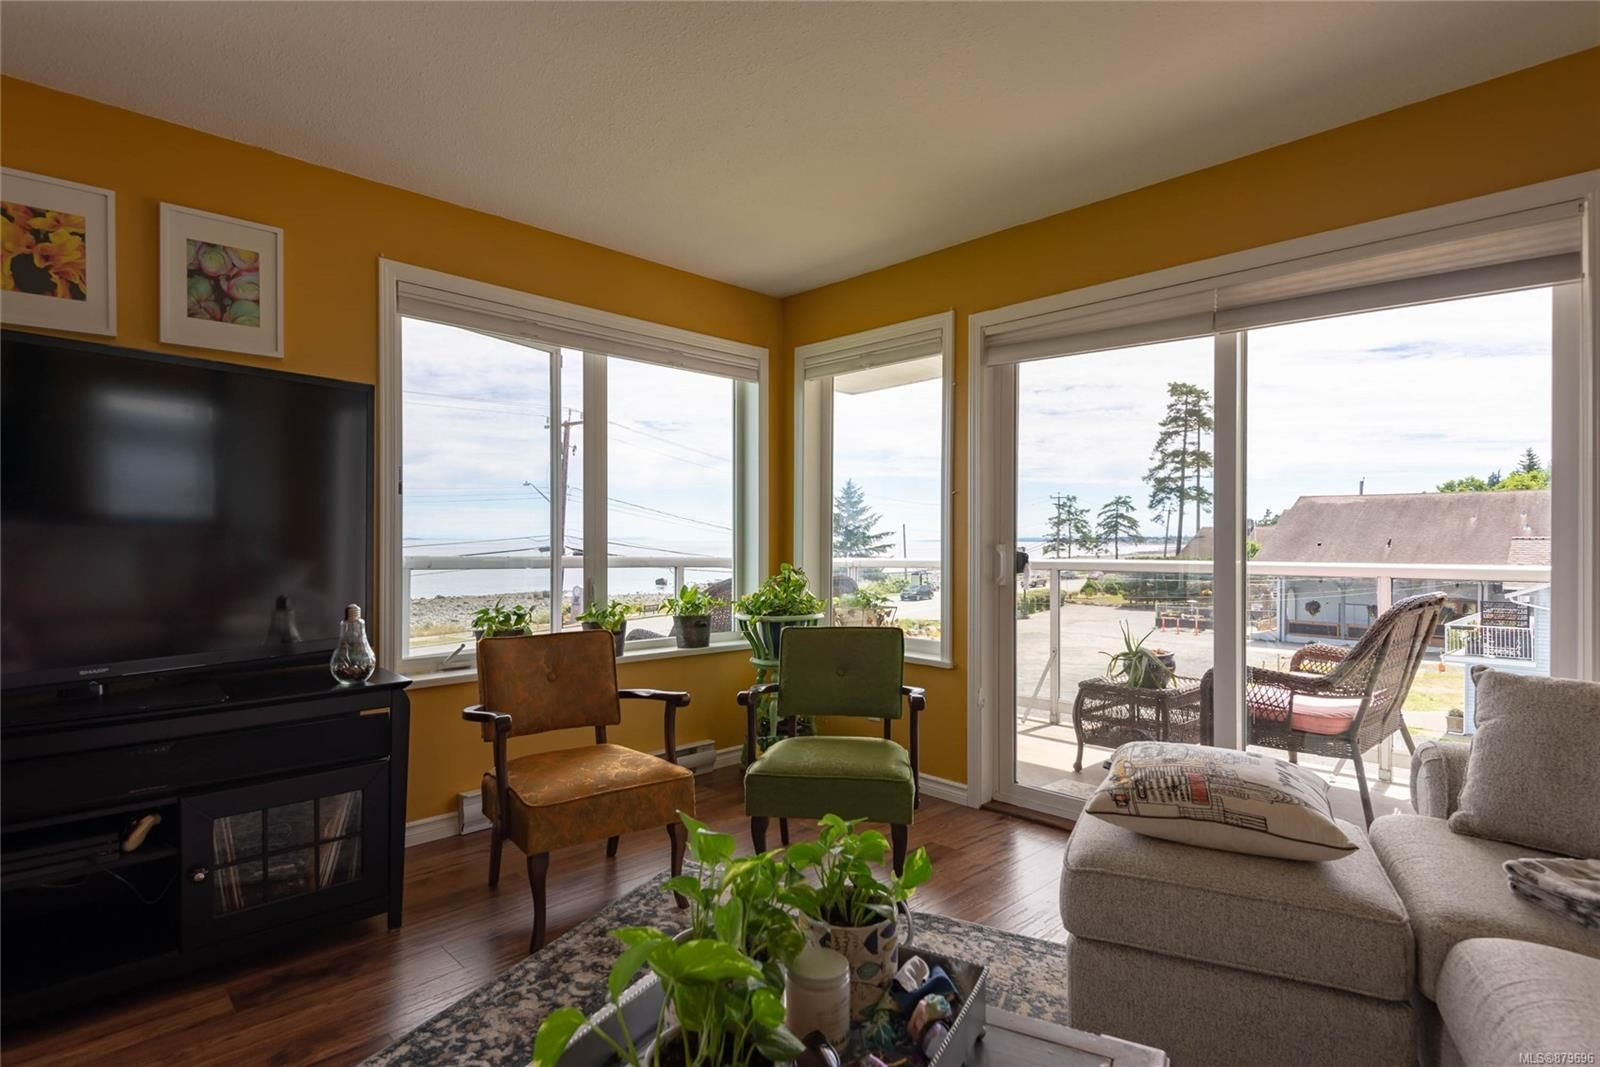 Photo 12: Photos: 219 390 S Island Hwy in : CR Campbell River West Condo for sale (Campbell River)  : MLS®# 879696